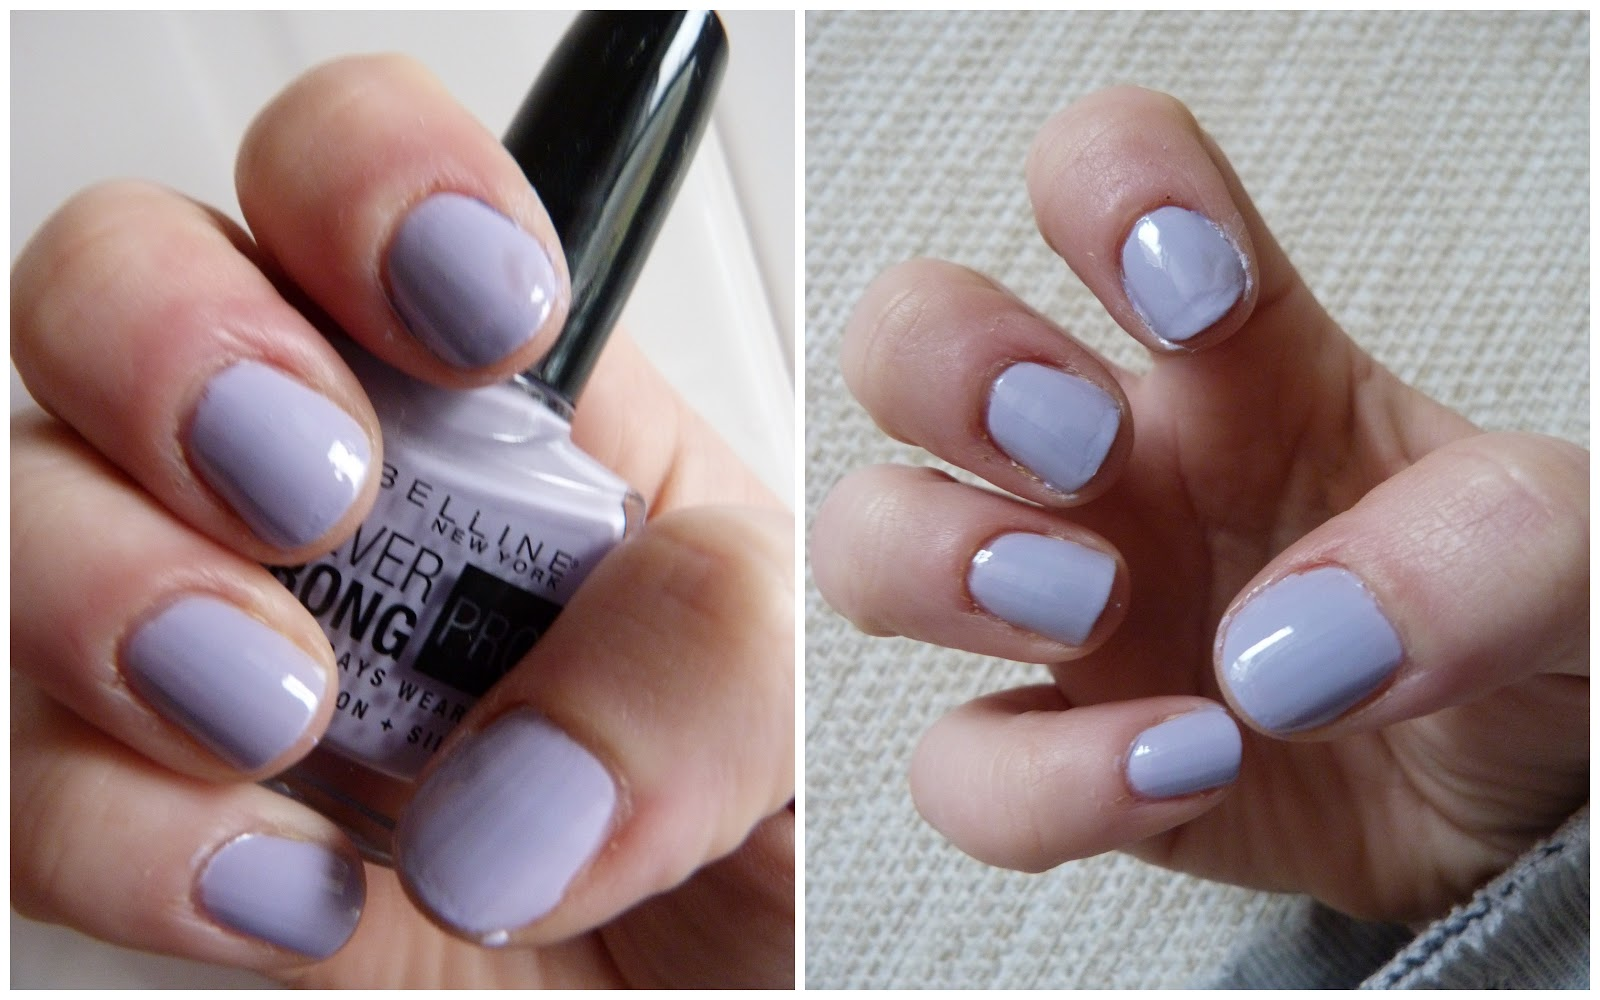 Maybelline Forever Strong Pro - Lilac Charm - Charmed I'm ...